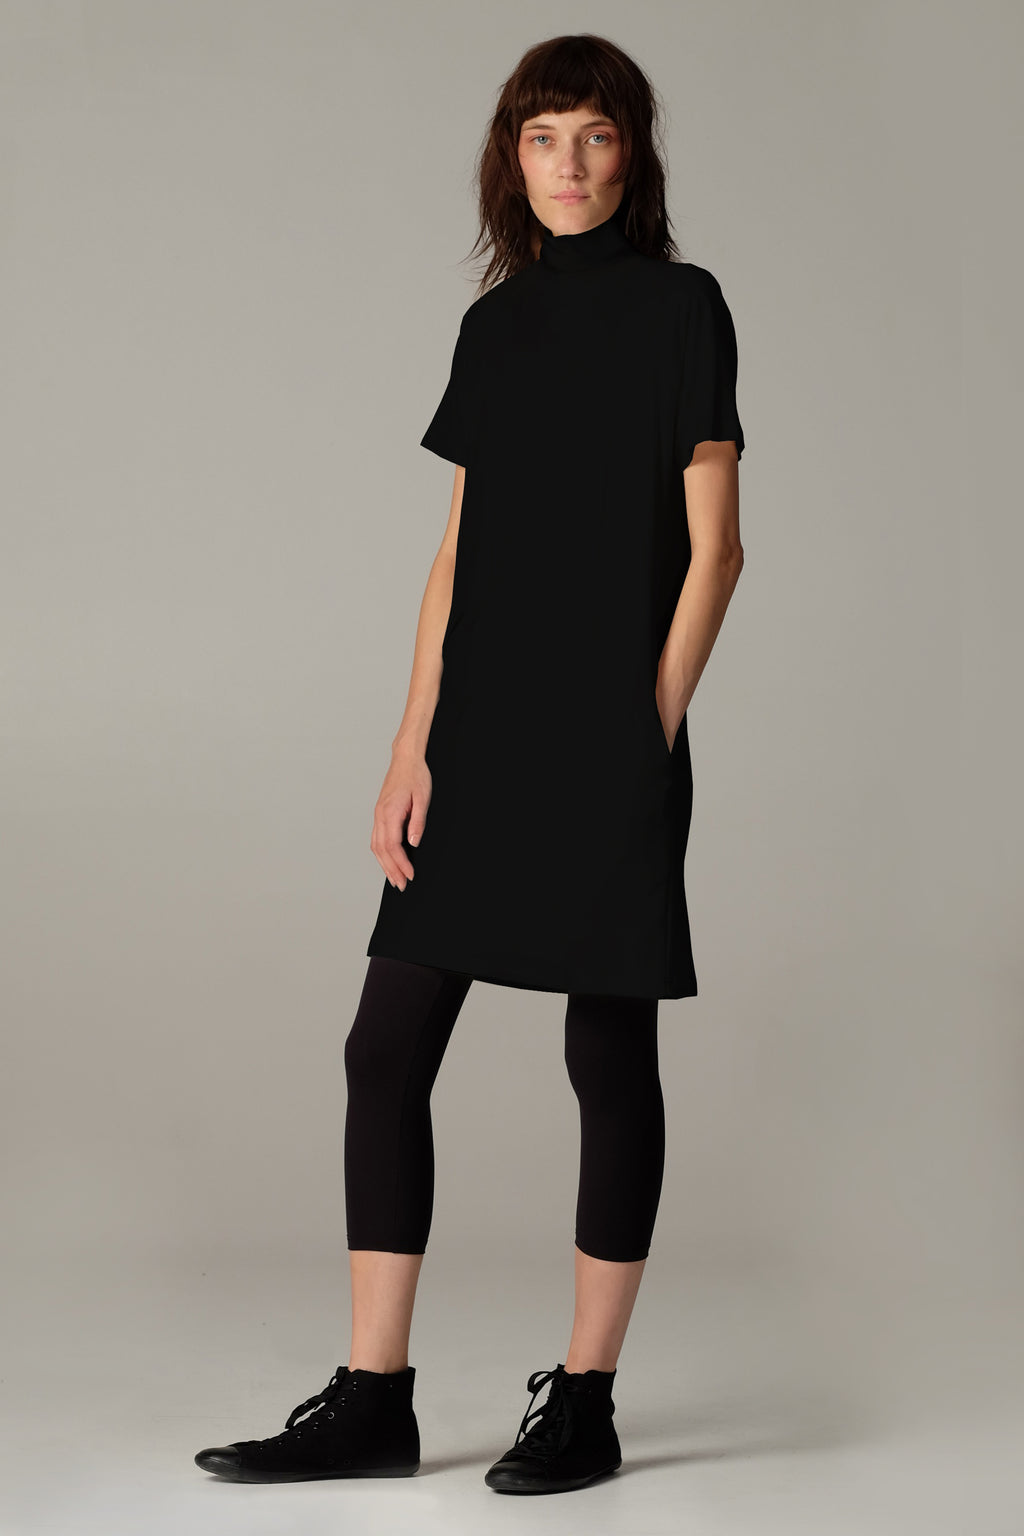 WASTE dress short black - One Wolf